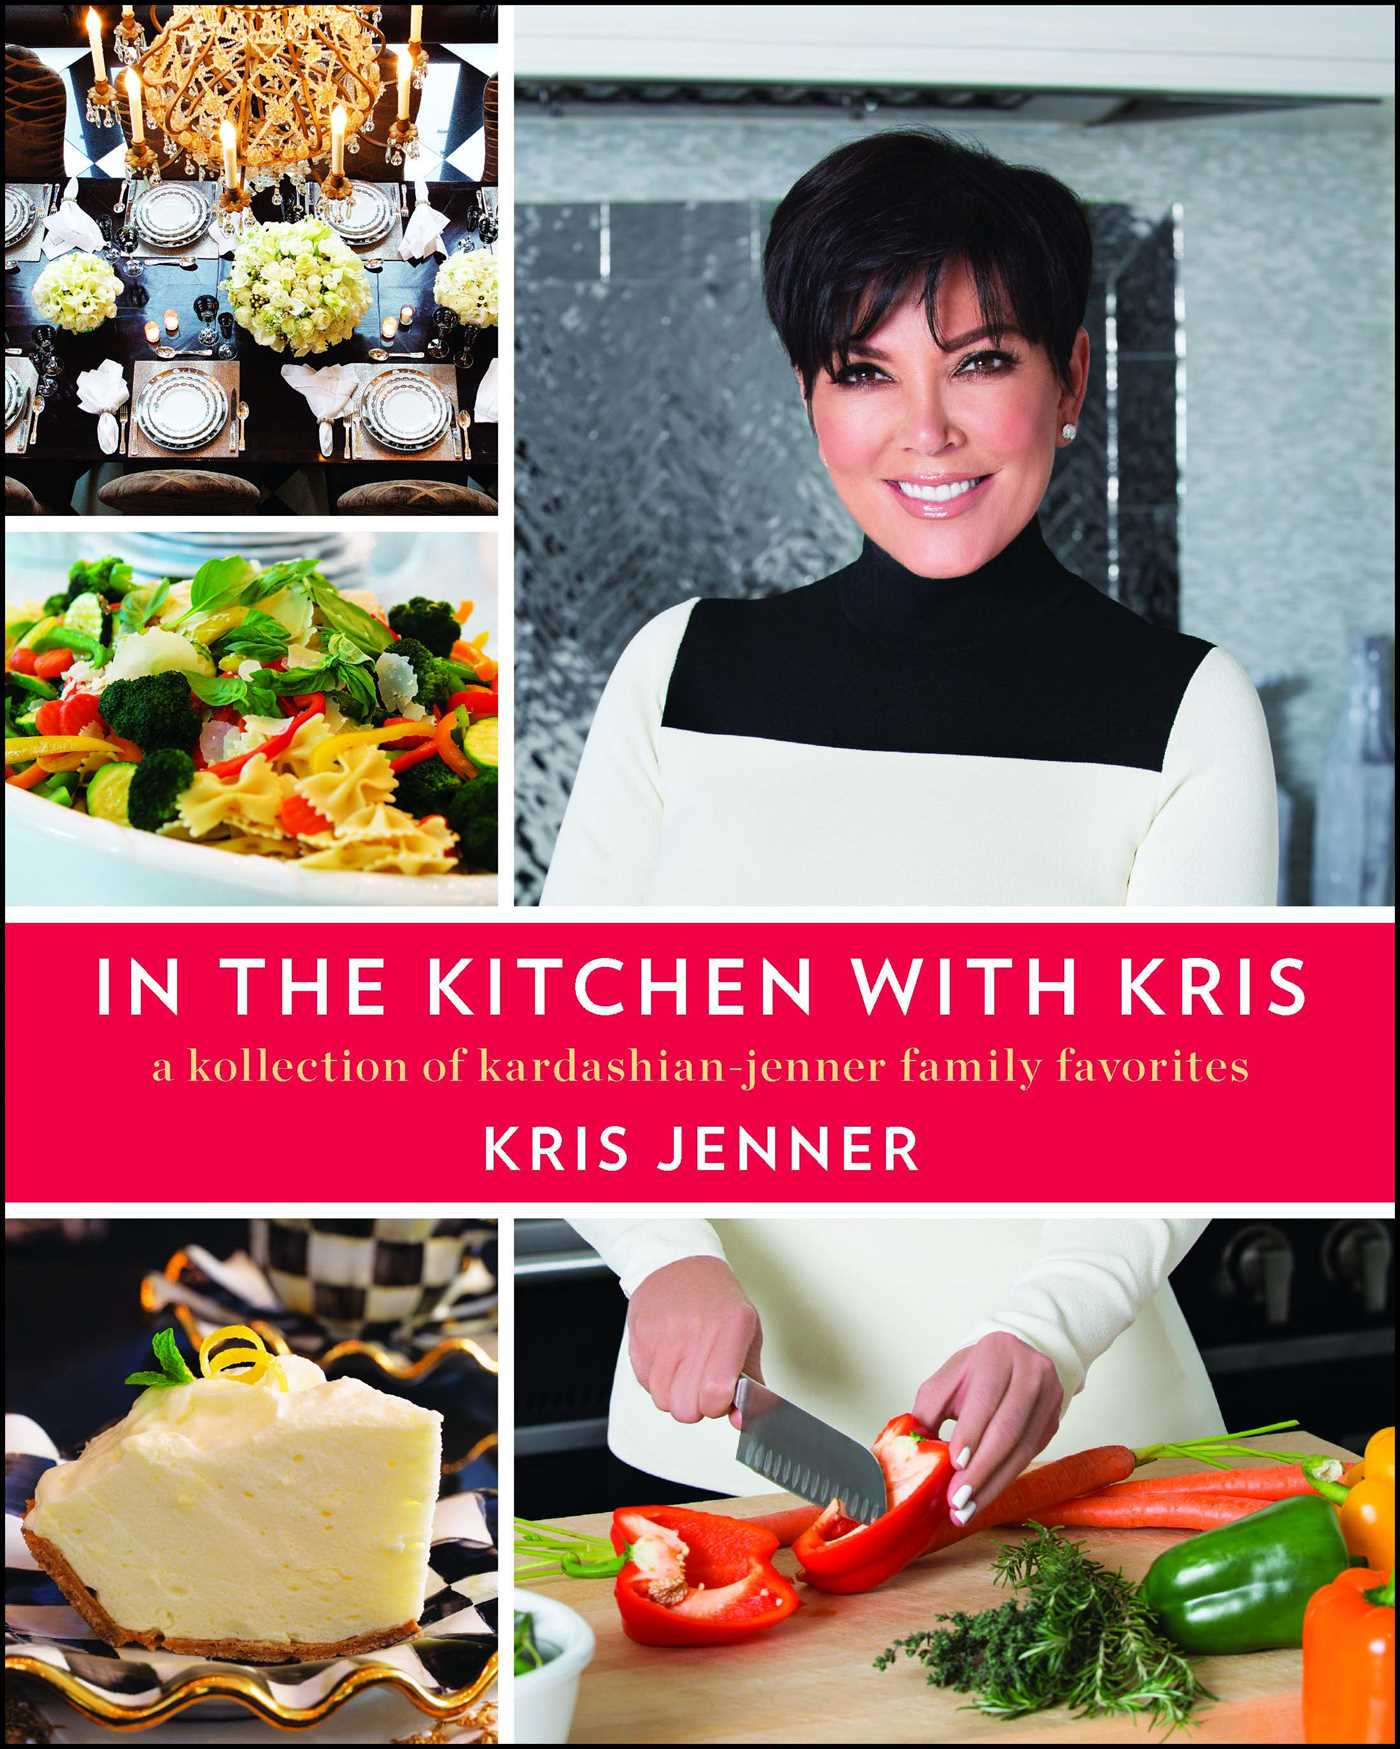 In the kitchen with kris 9781476728902 hr